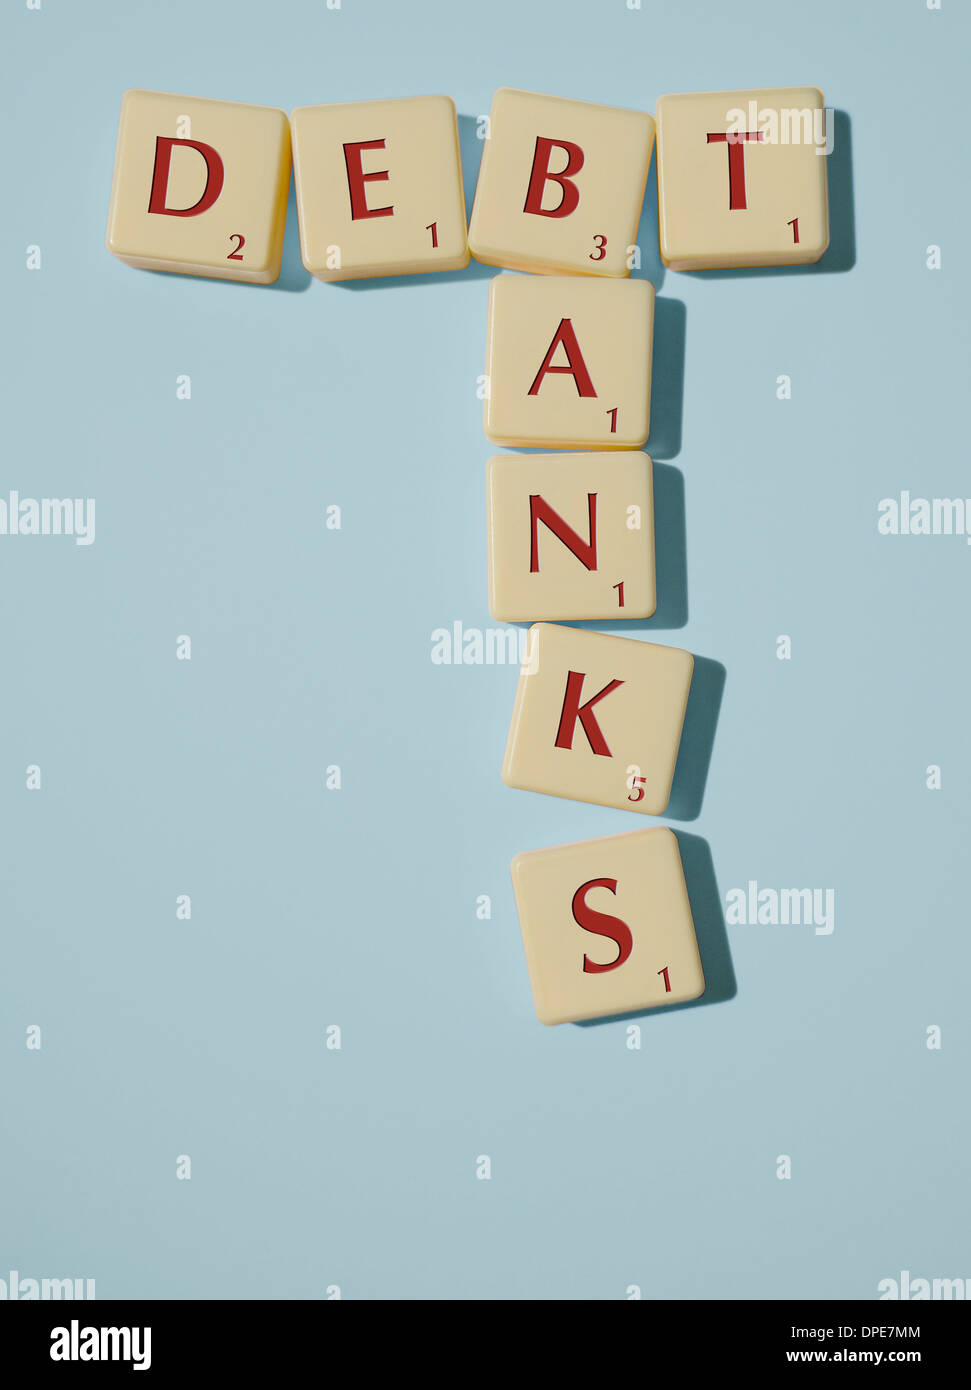 Scrabble Pieces arranged to spell out the words Debt and Banks on a Blue Background - Stock Image